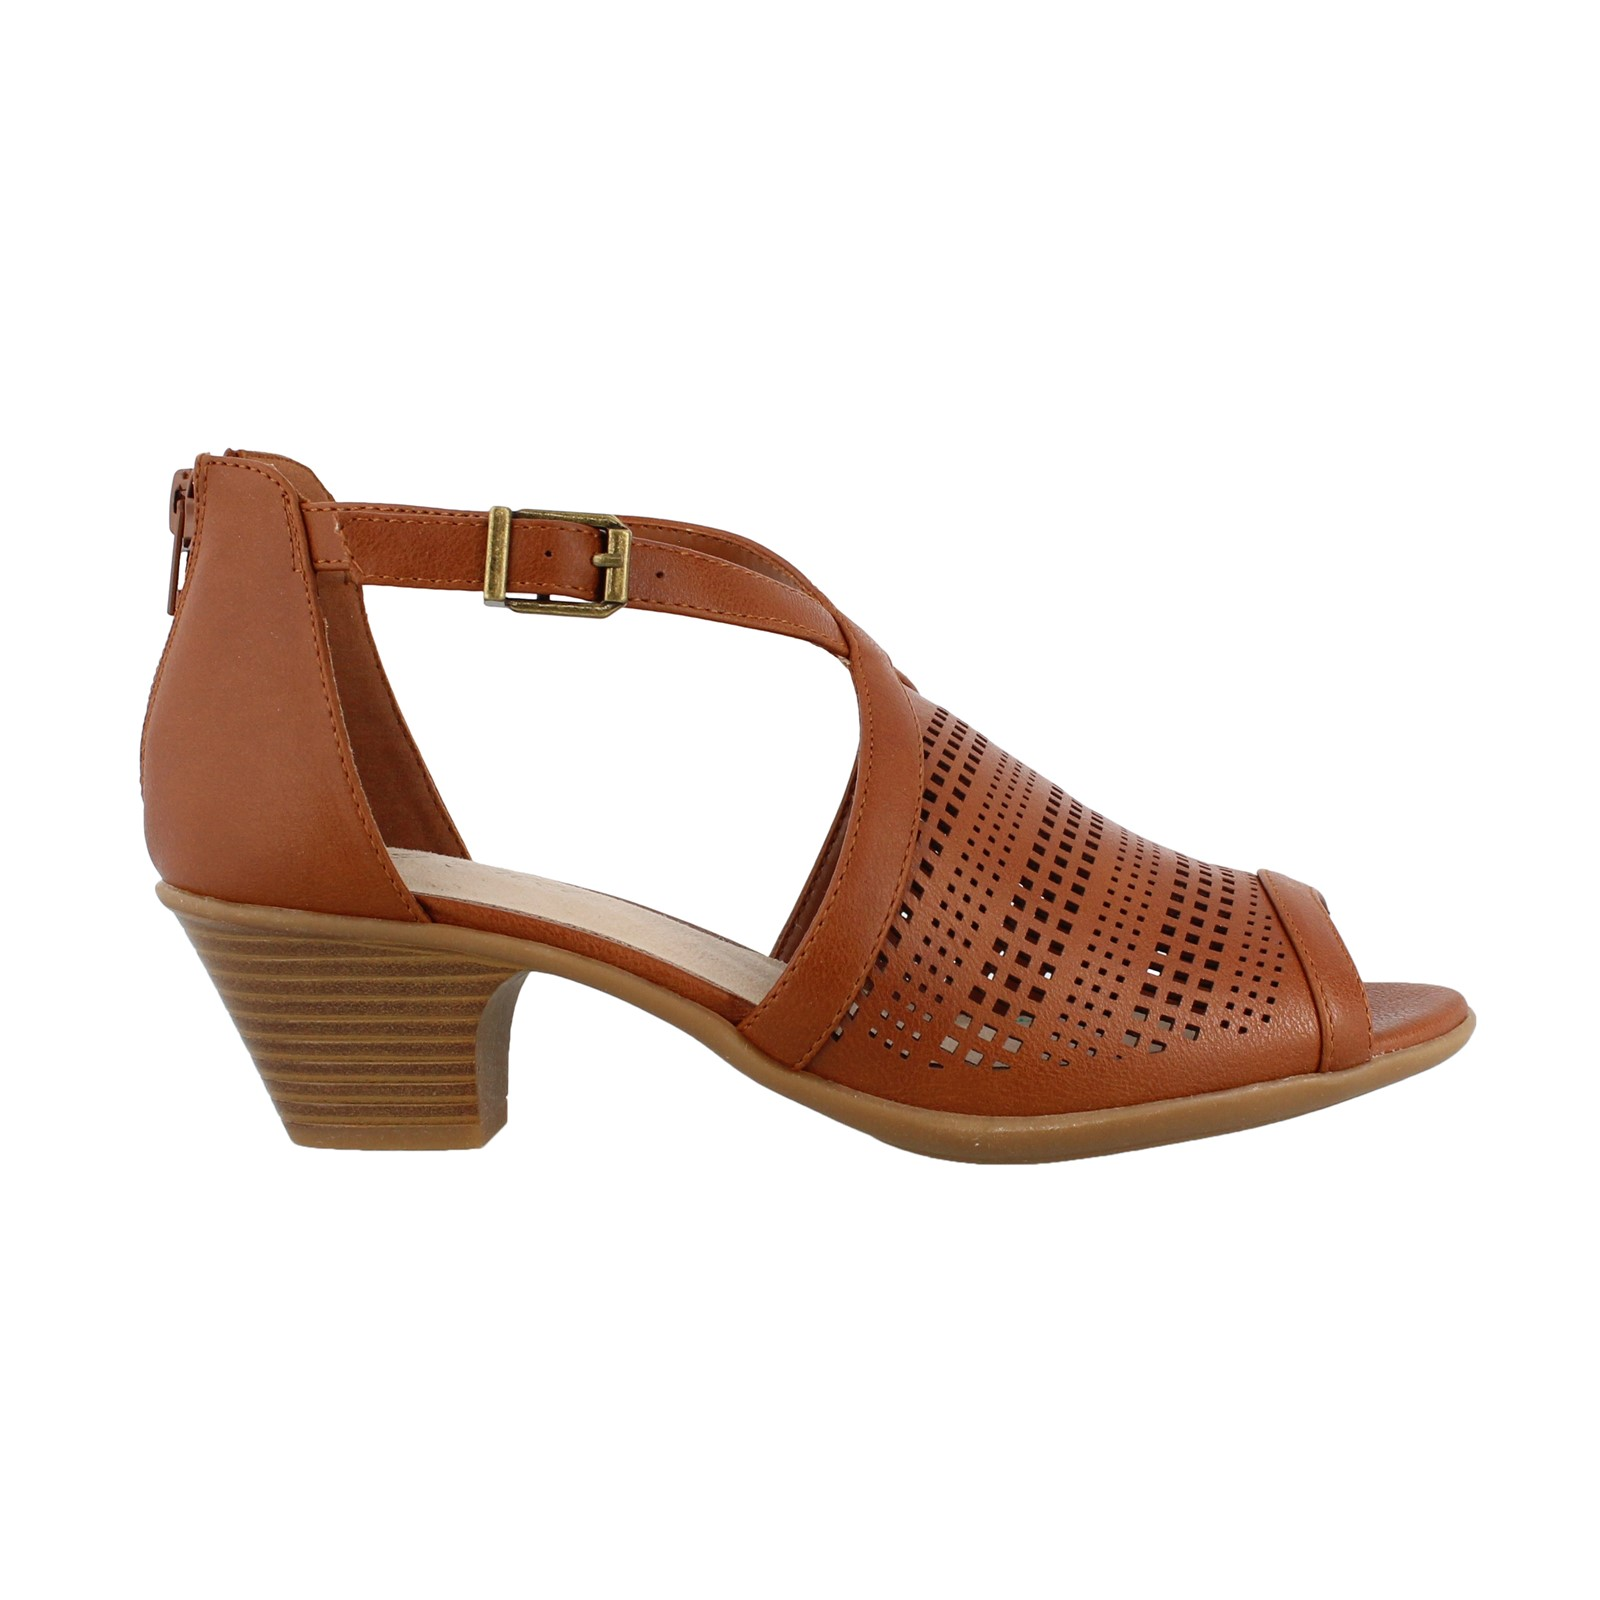 Women's Easy Street, Anita Mid Heel Sandals